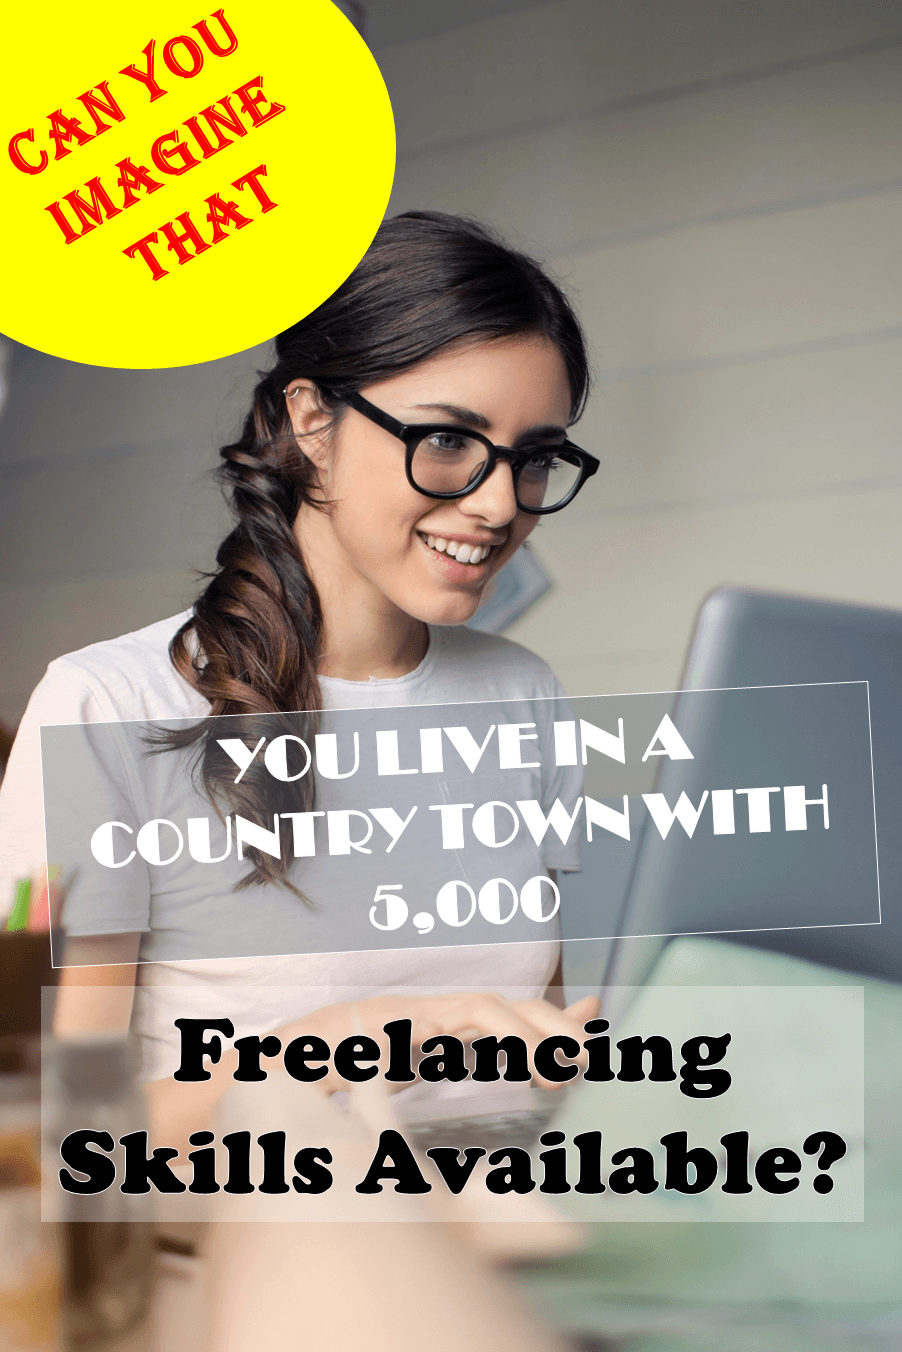 There are 5000 Freelance Skills Available.